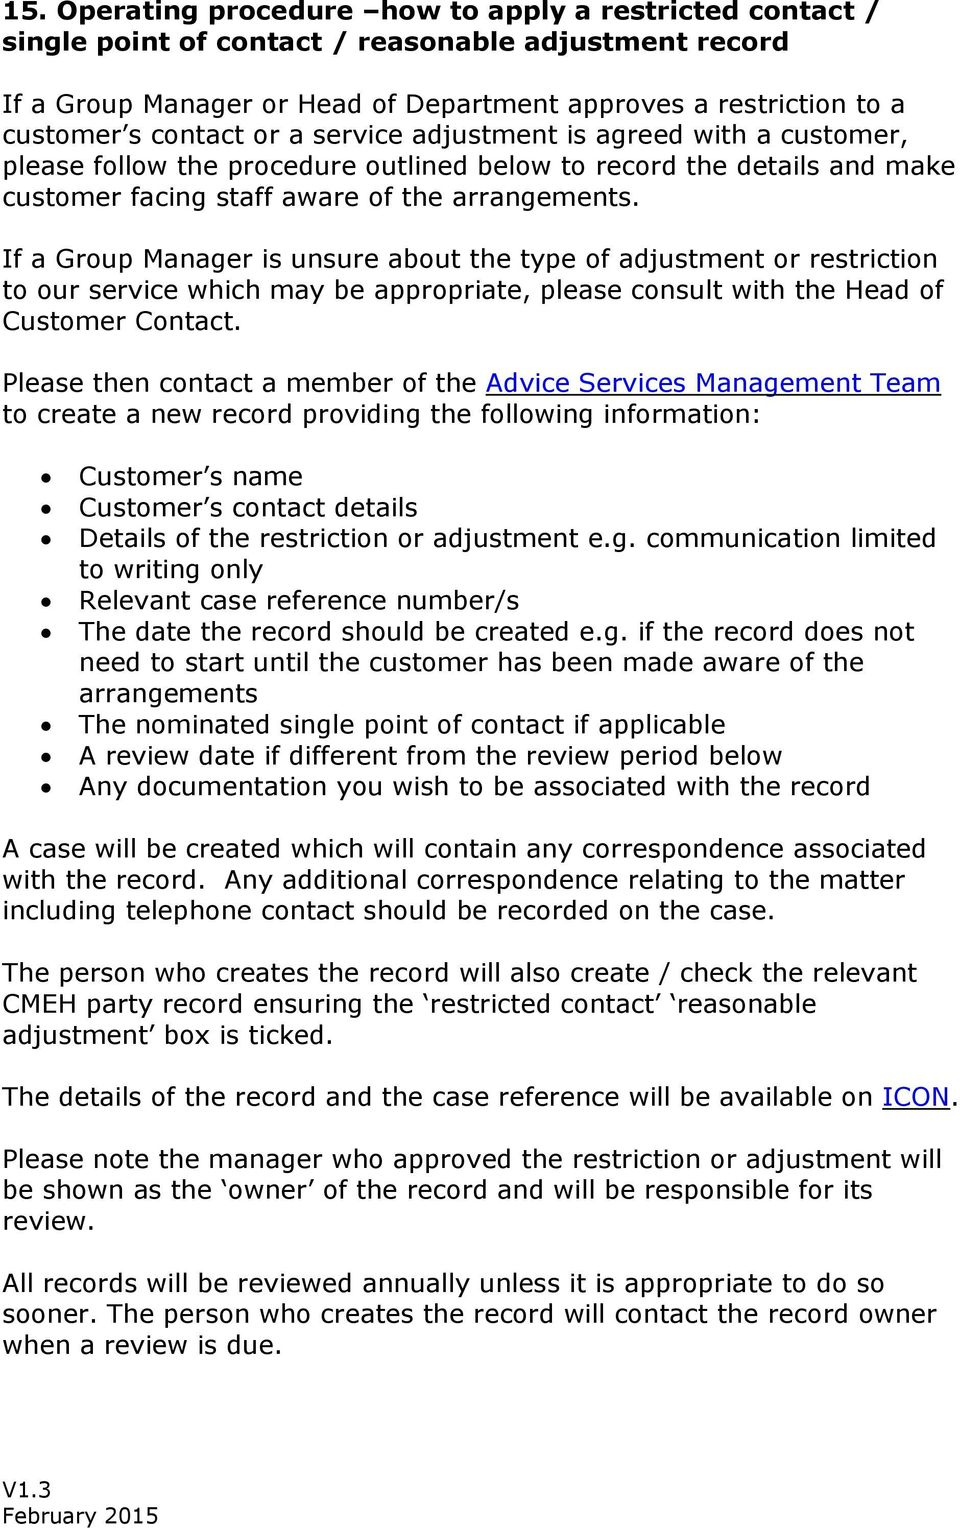 If a Group Manager is unsure about the type of adjustment or restriction to our service which may be appropriate, please consult with the Head of Customer Contact.